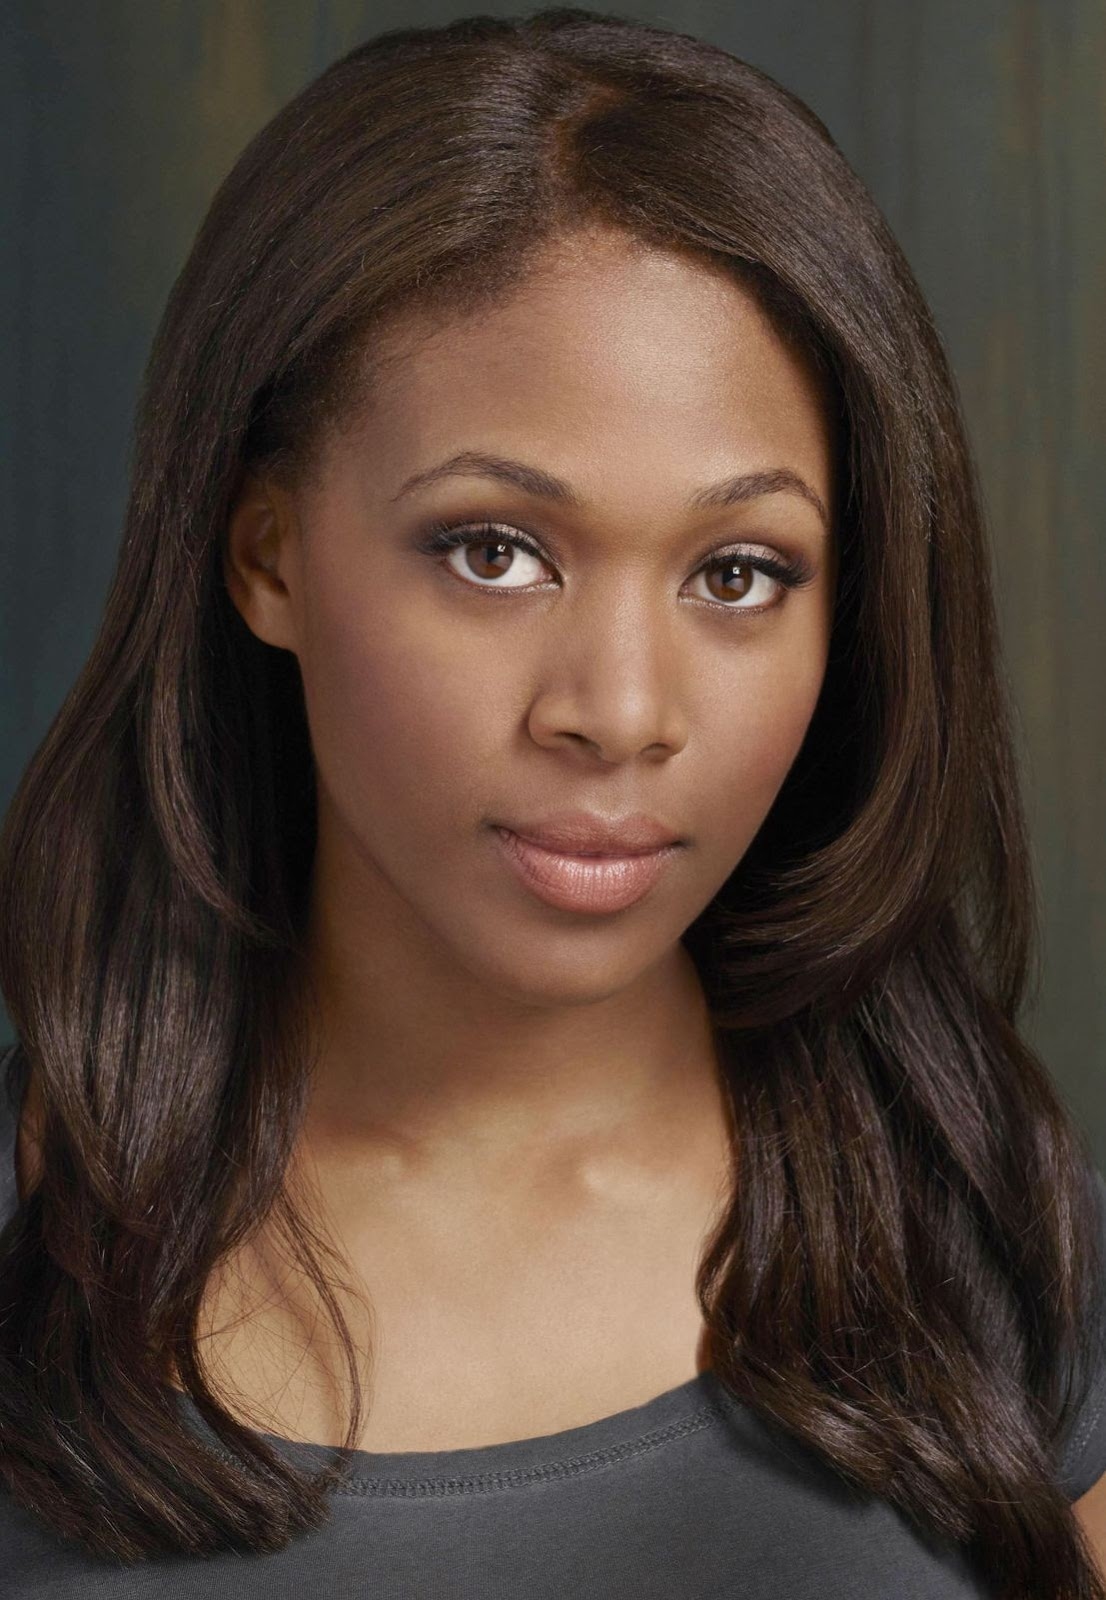 pictures of beautiful women  actress nicole beharie